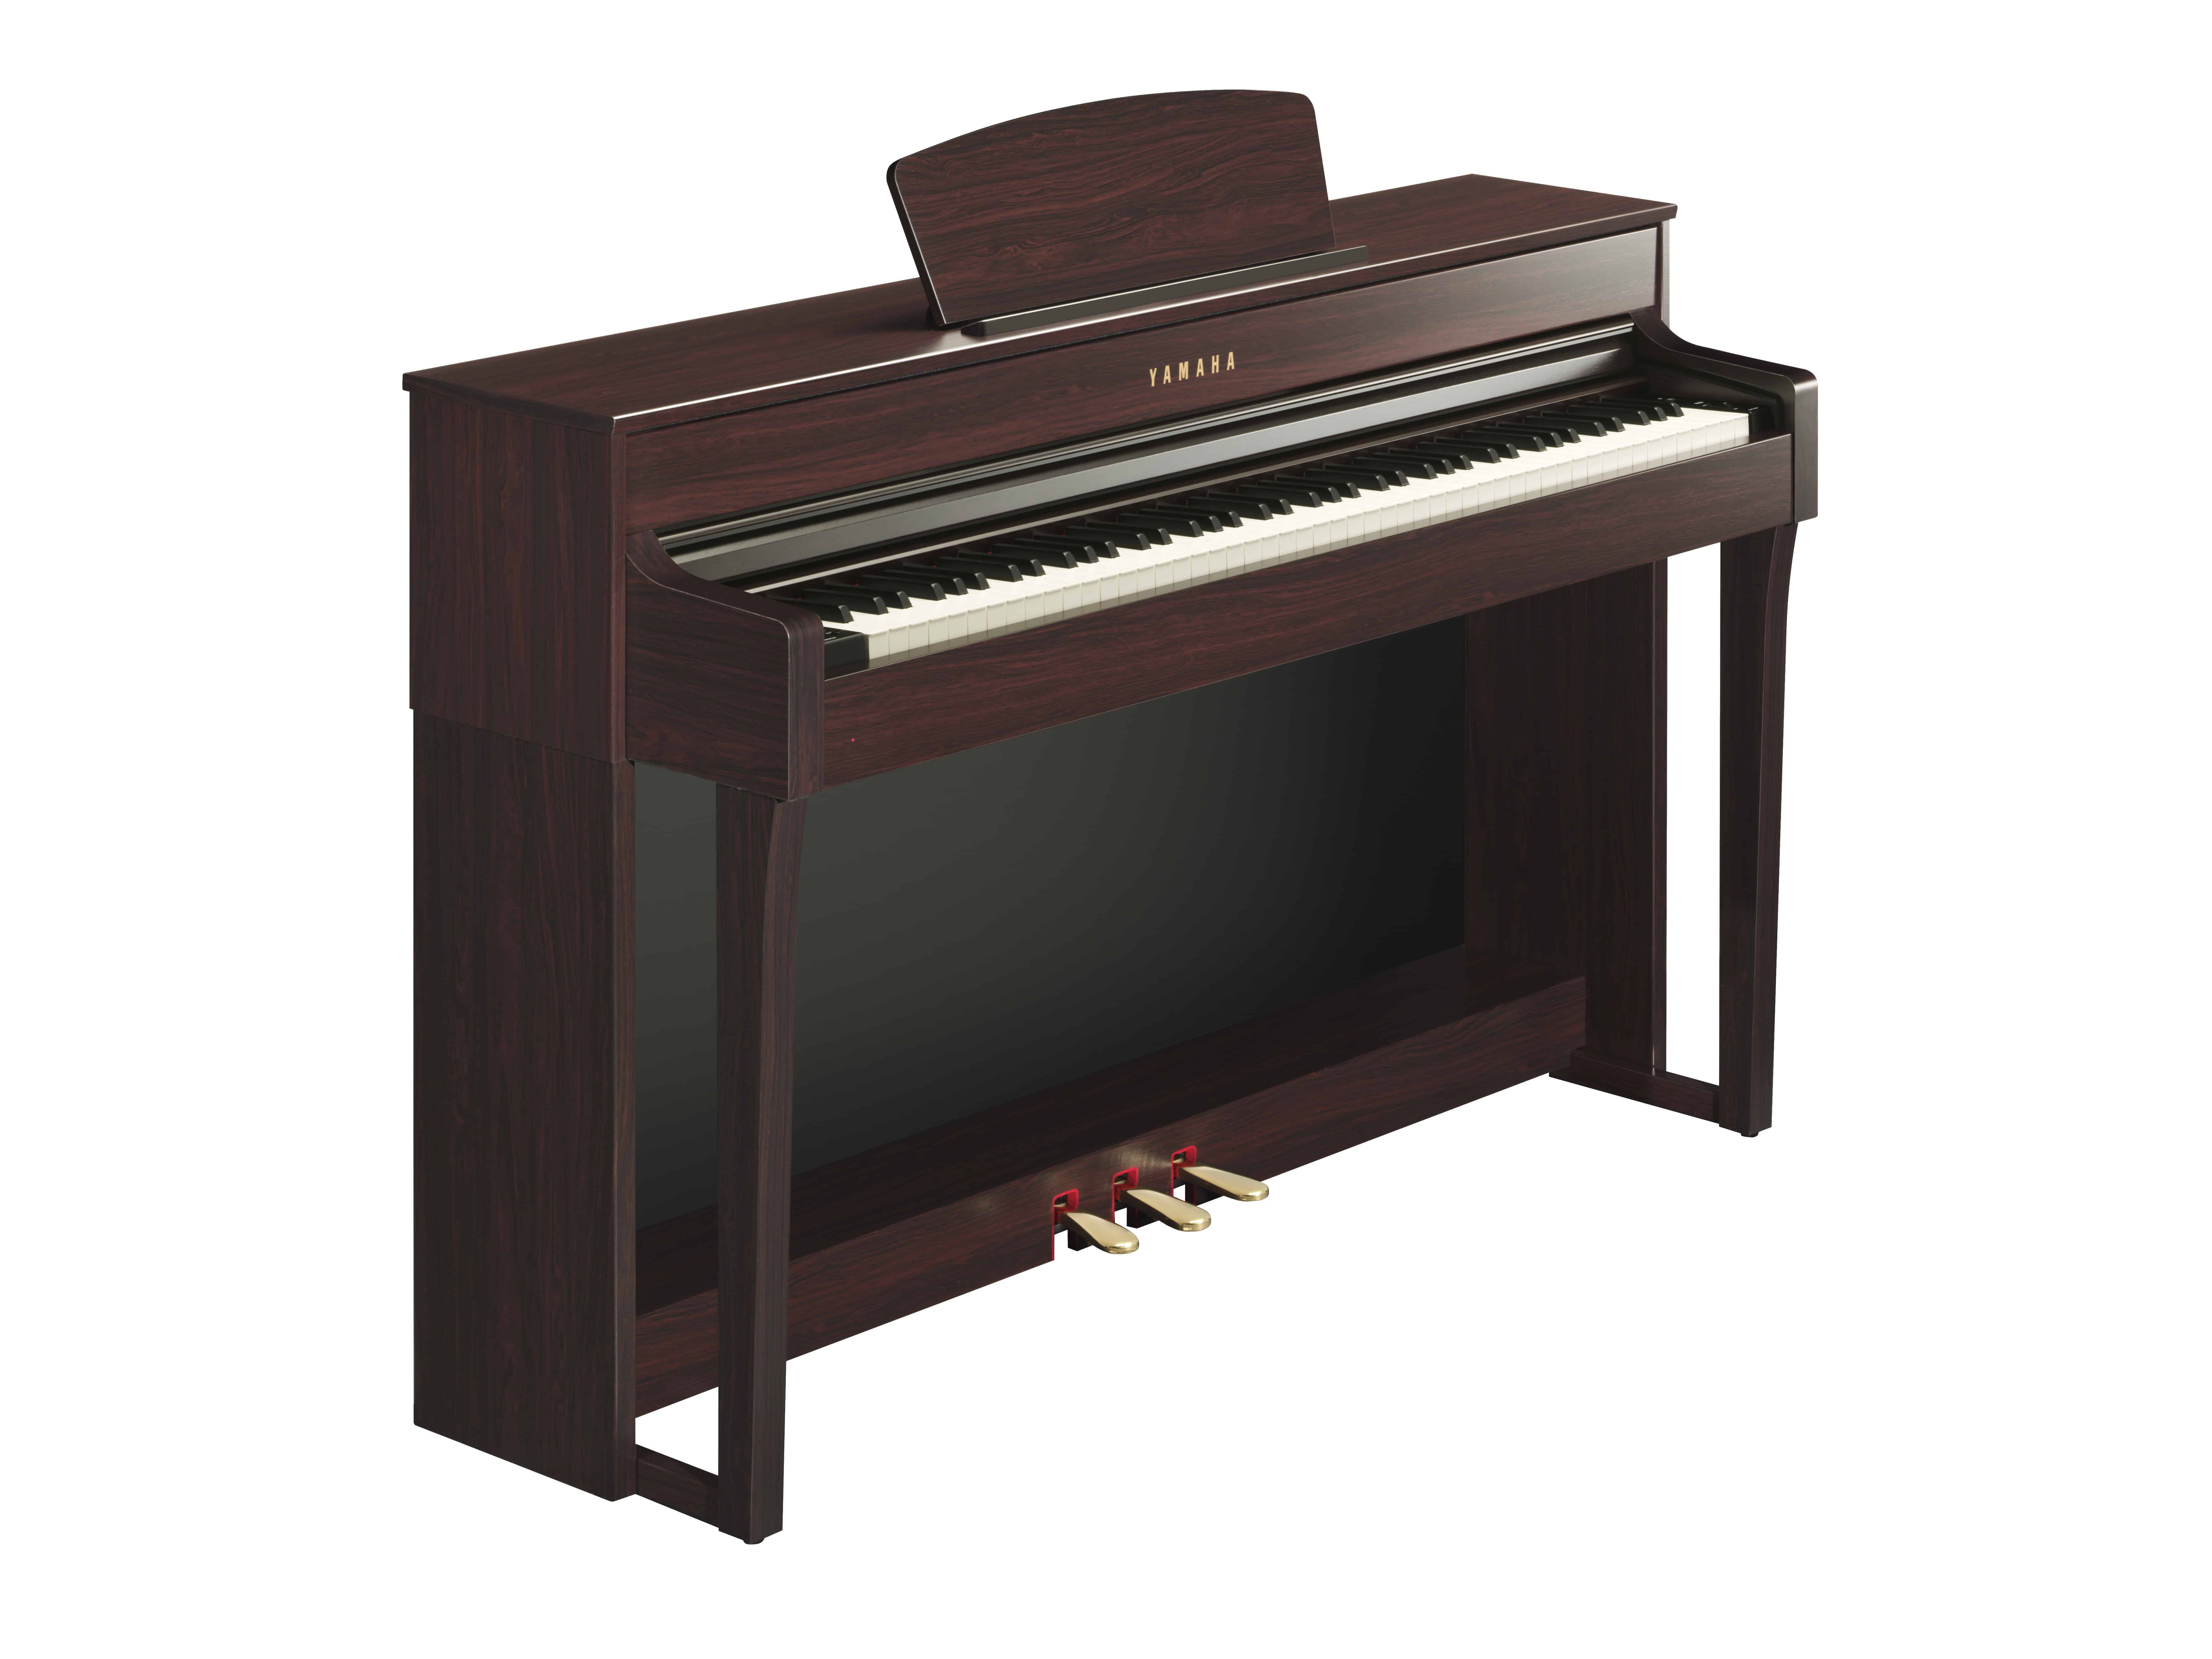 yamaha clp 635 digital piano most popular digital piano. Black Bedroom Furniture Sets. Home Design Ideas